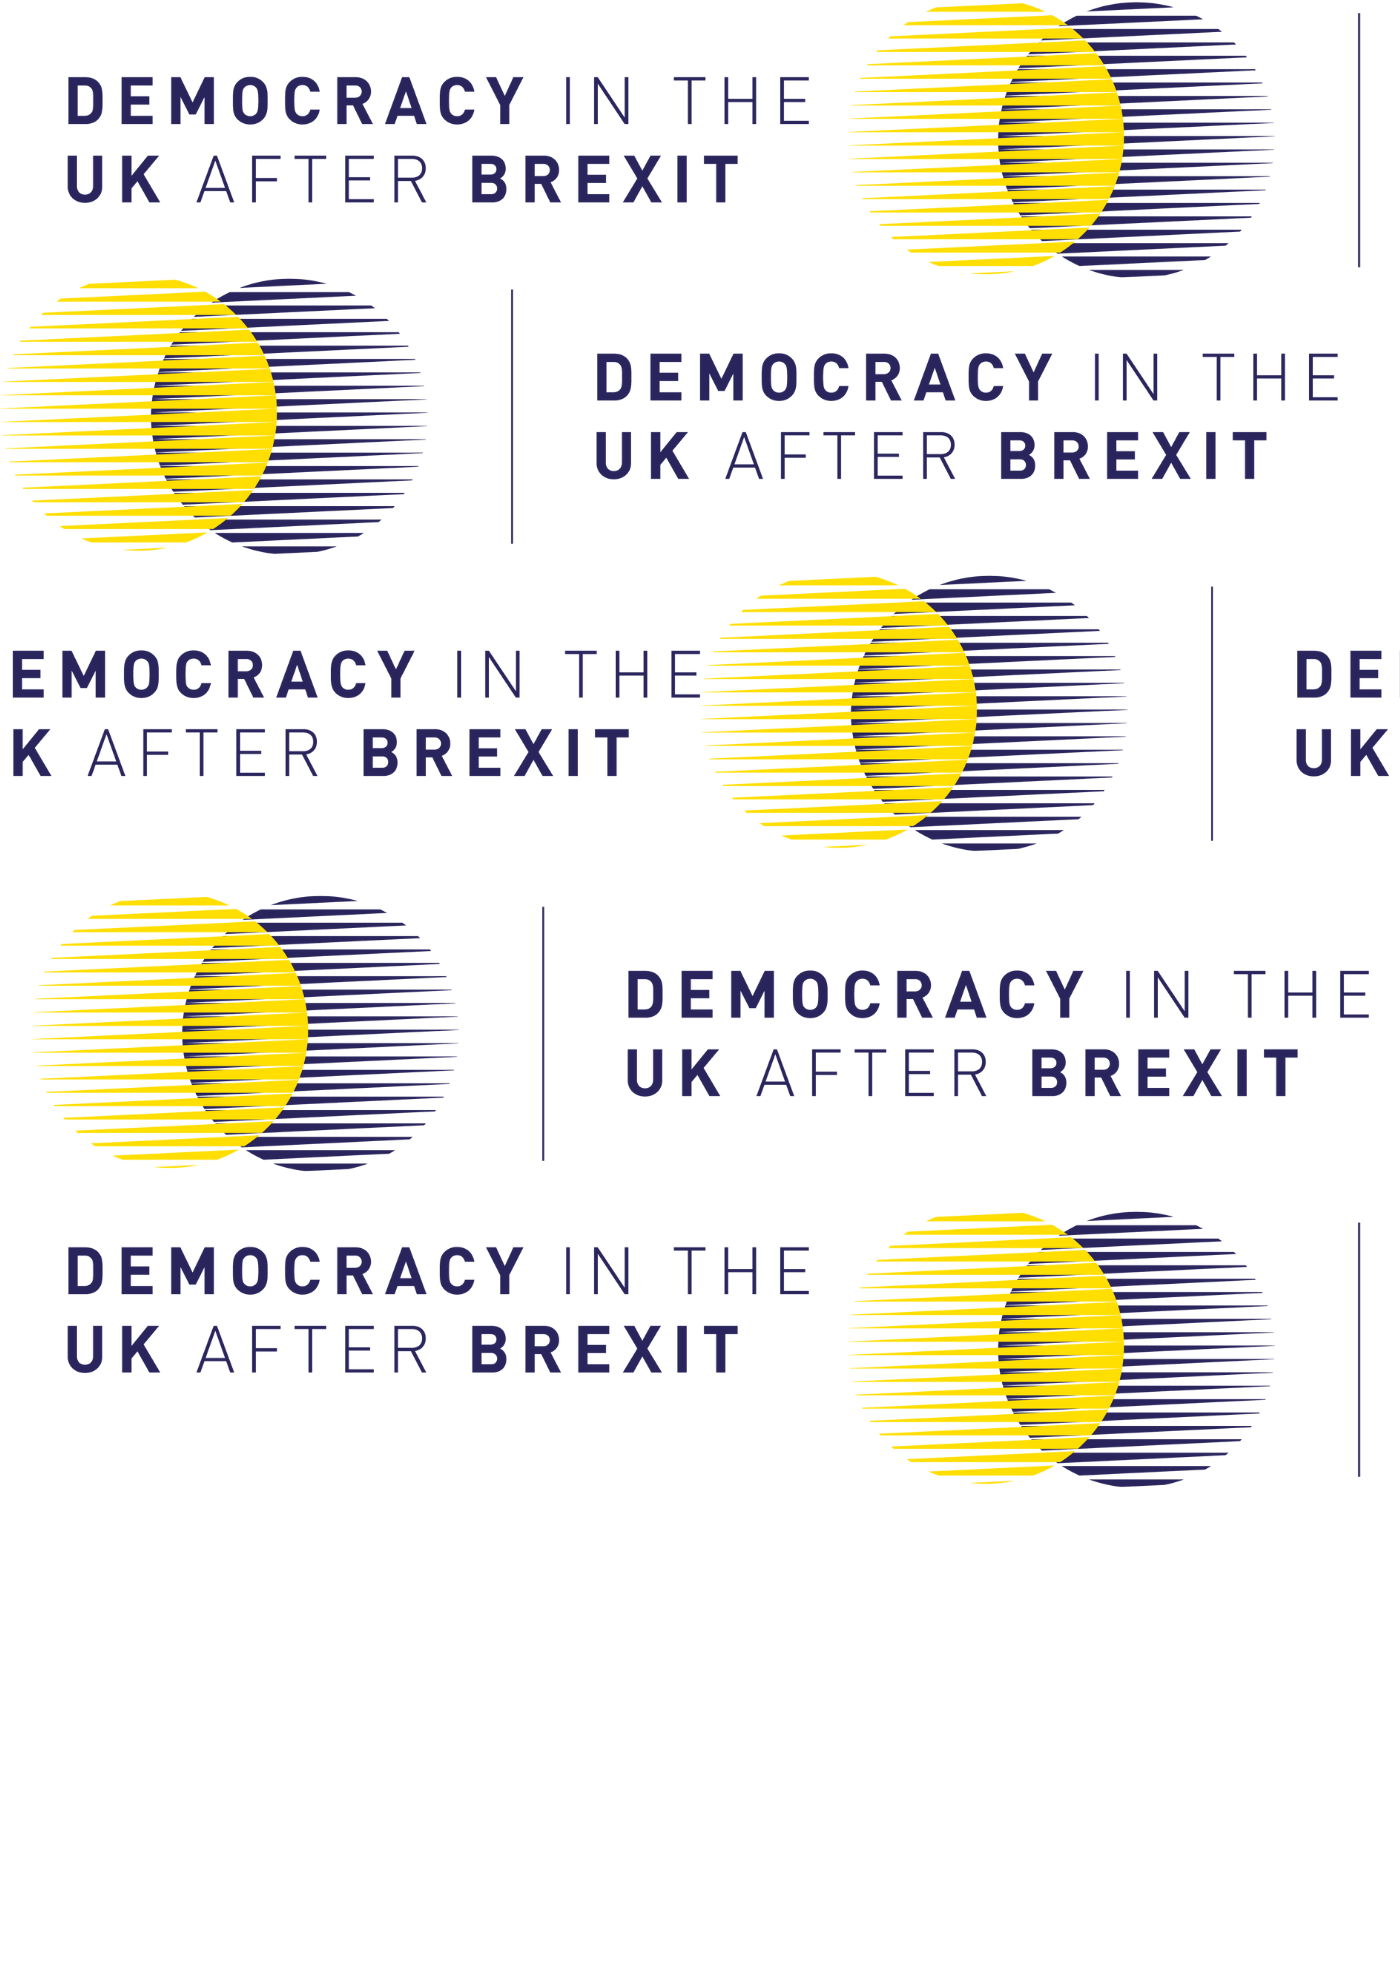 Democracy in the UK after Brexit logo